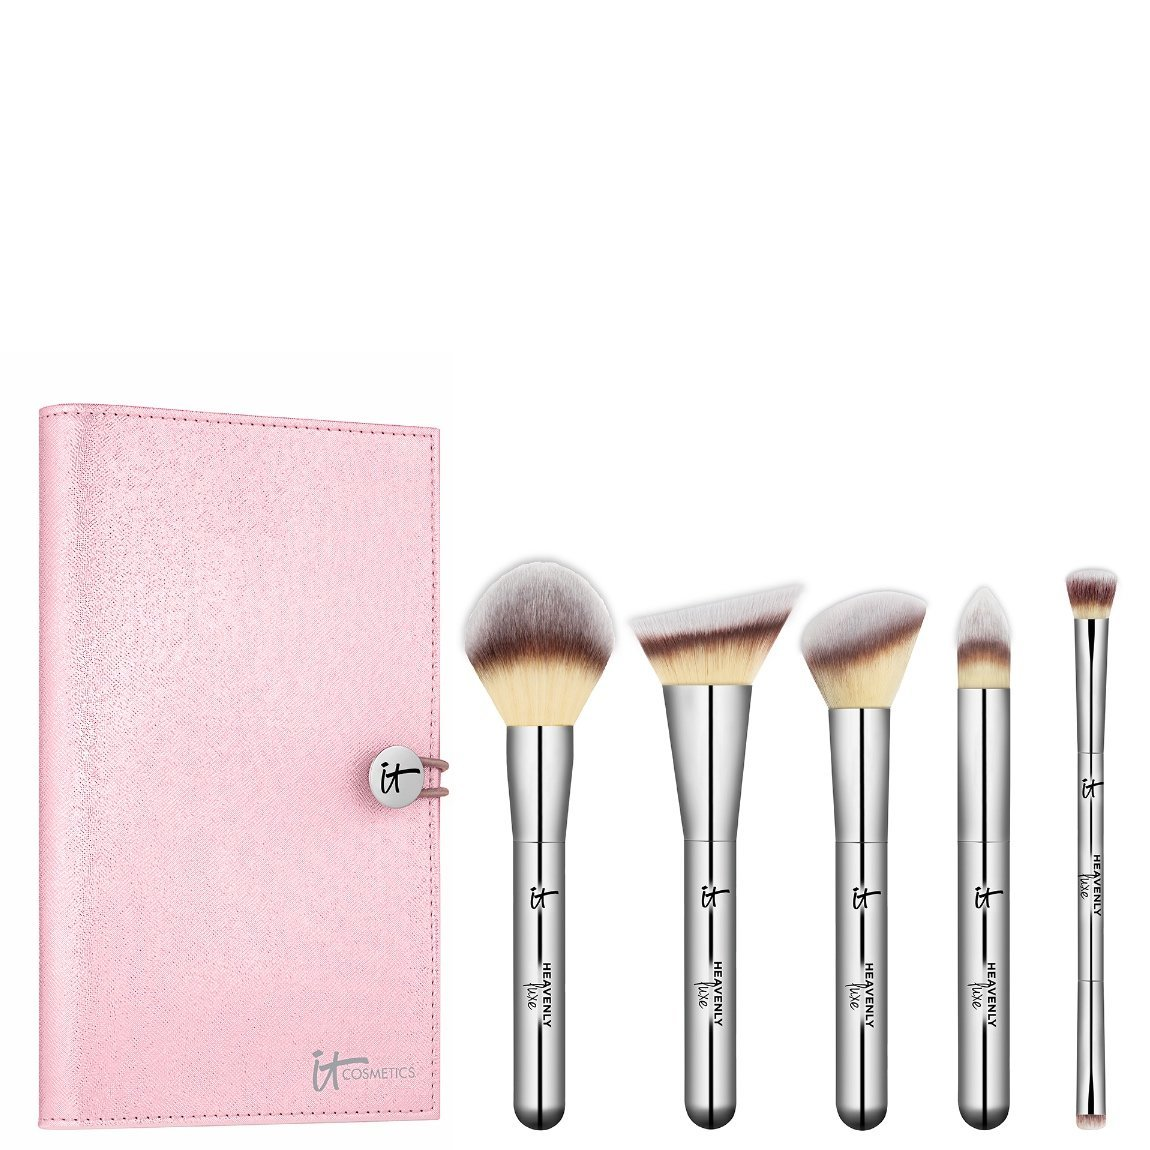 IT Cosmetics  Heavenly Luxe Must-Haves Brush Set product swatch.